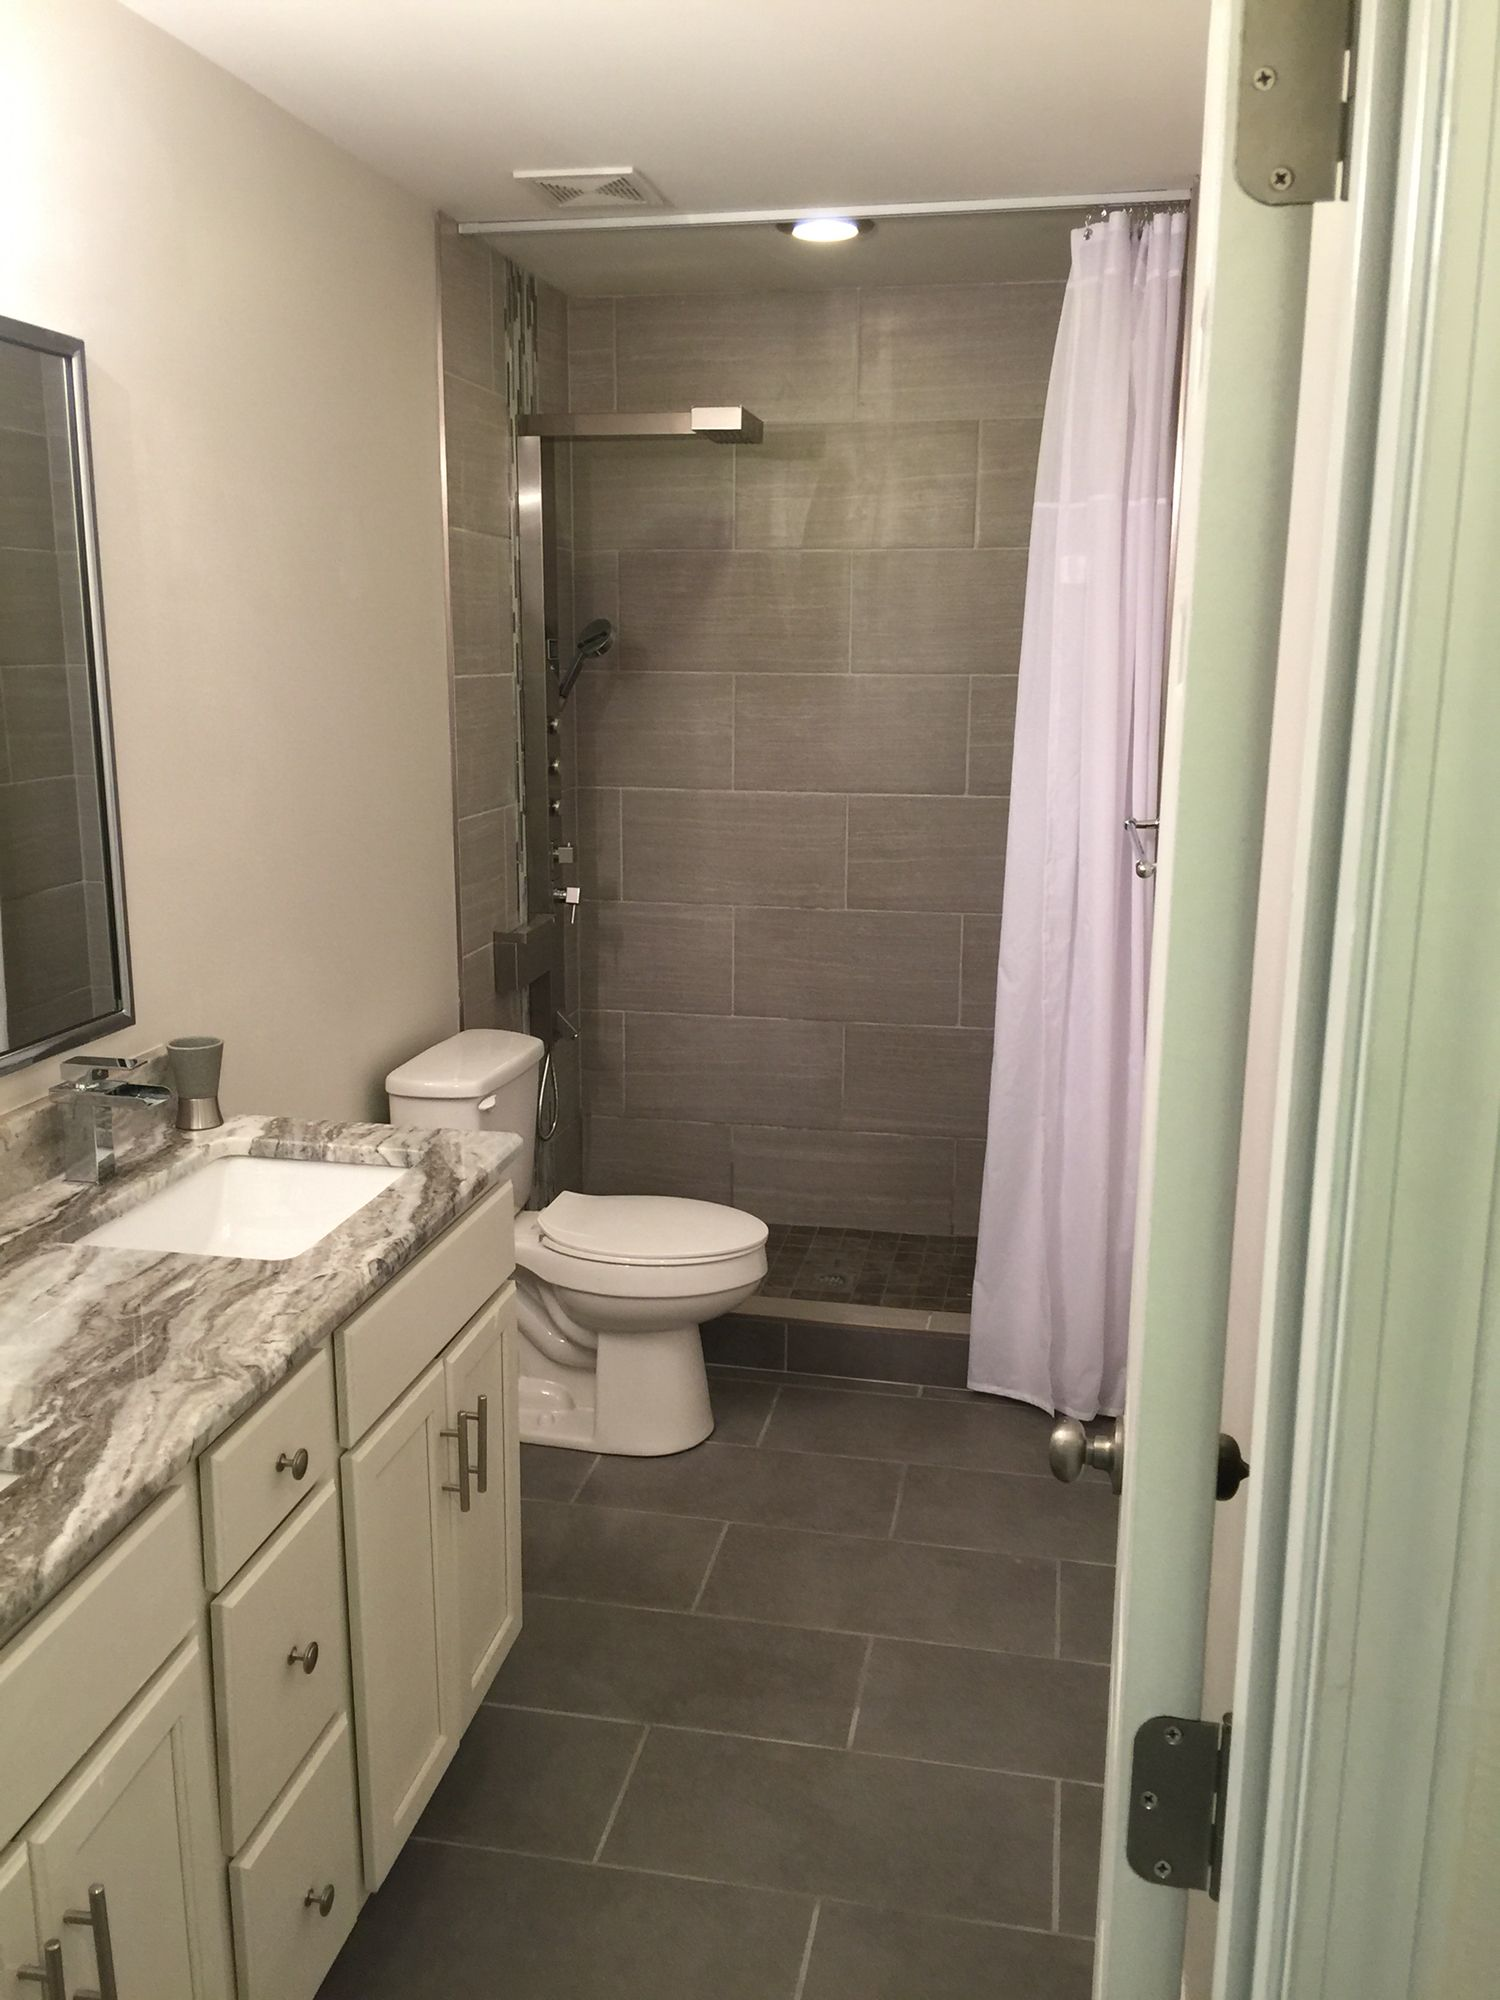 Bathroom remodel using 12x24 Leonia silver porcelain tile, trax ...